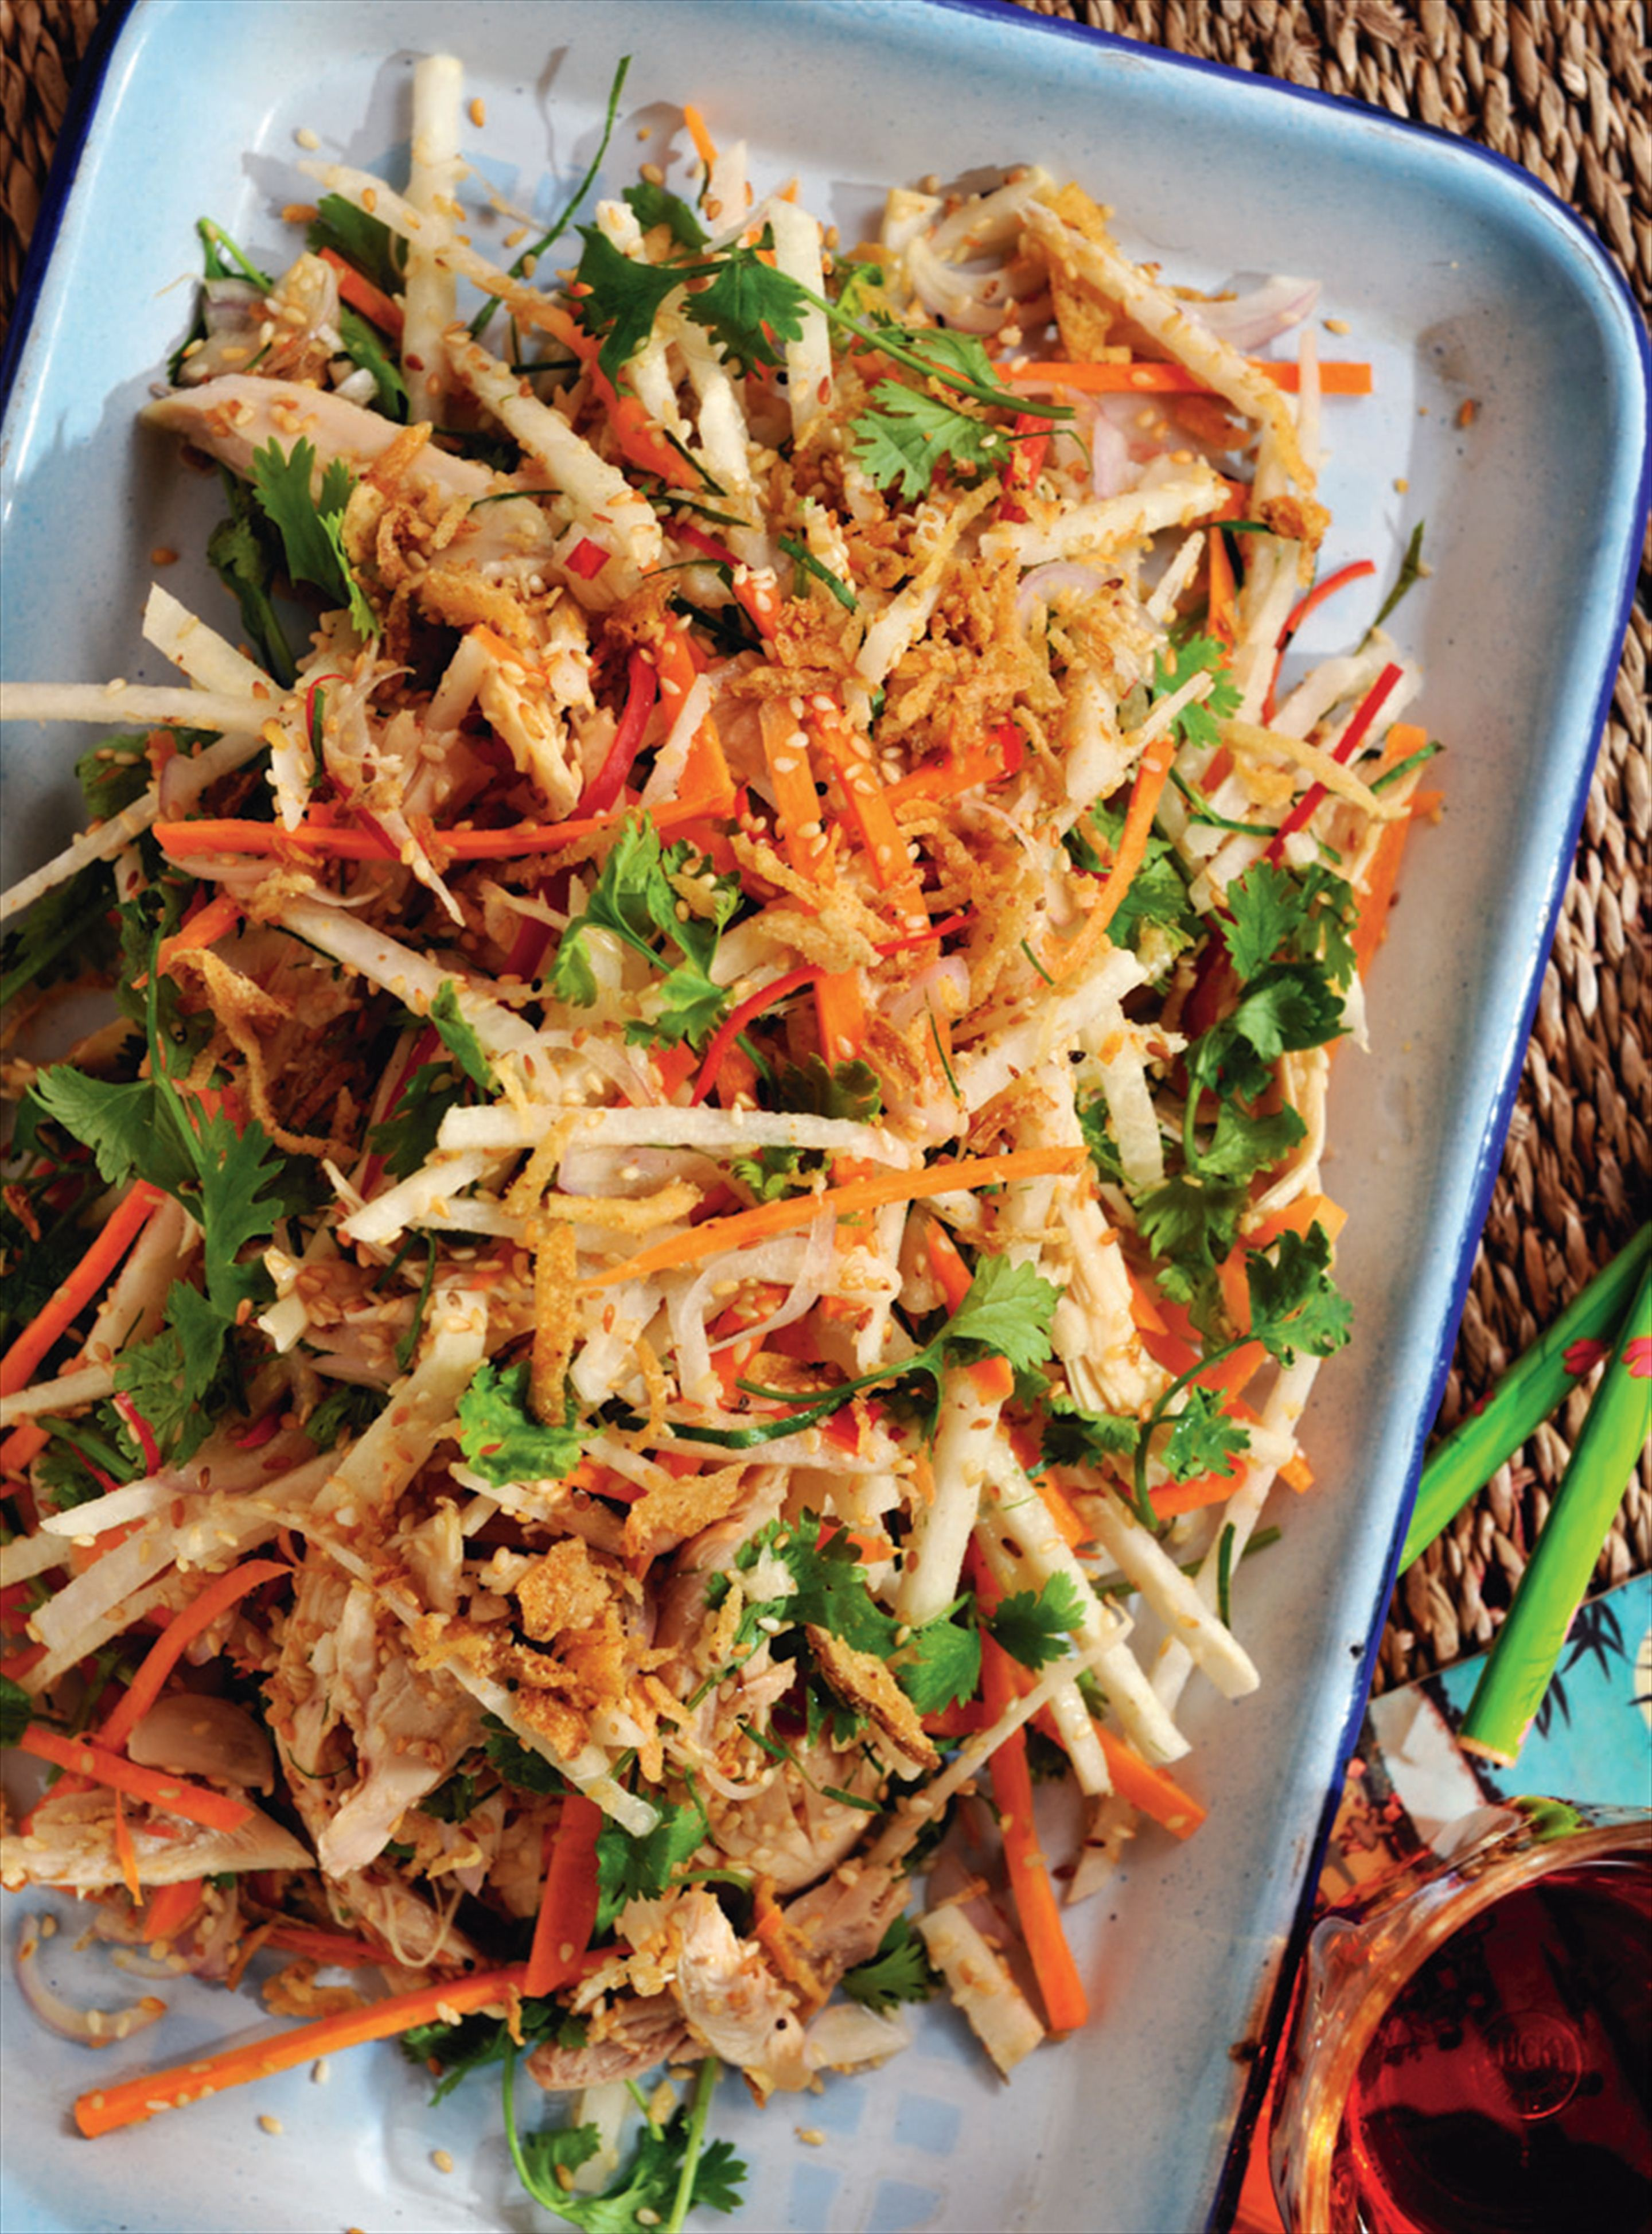 Chicken, sesame and jicama salad